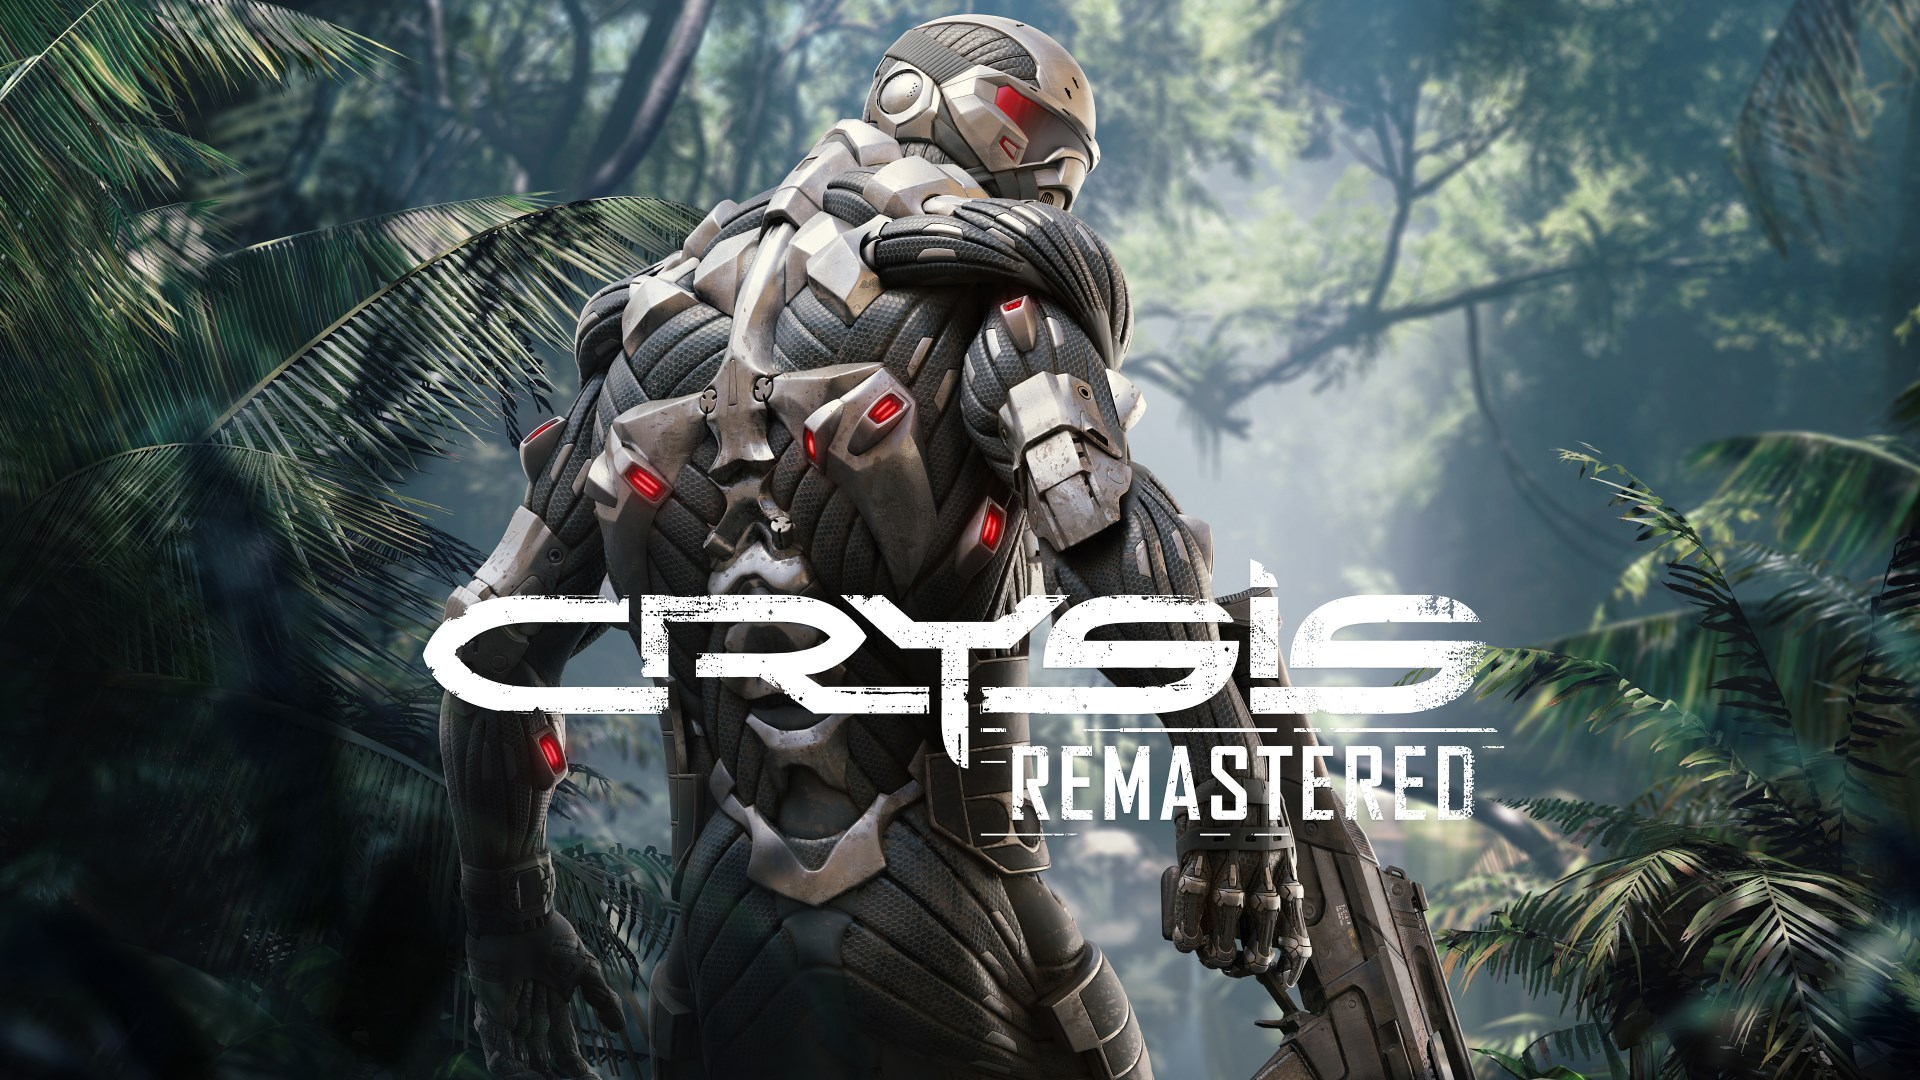 Crysis Remastered trailer leaks along with screenshots and release date